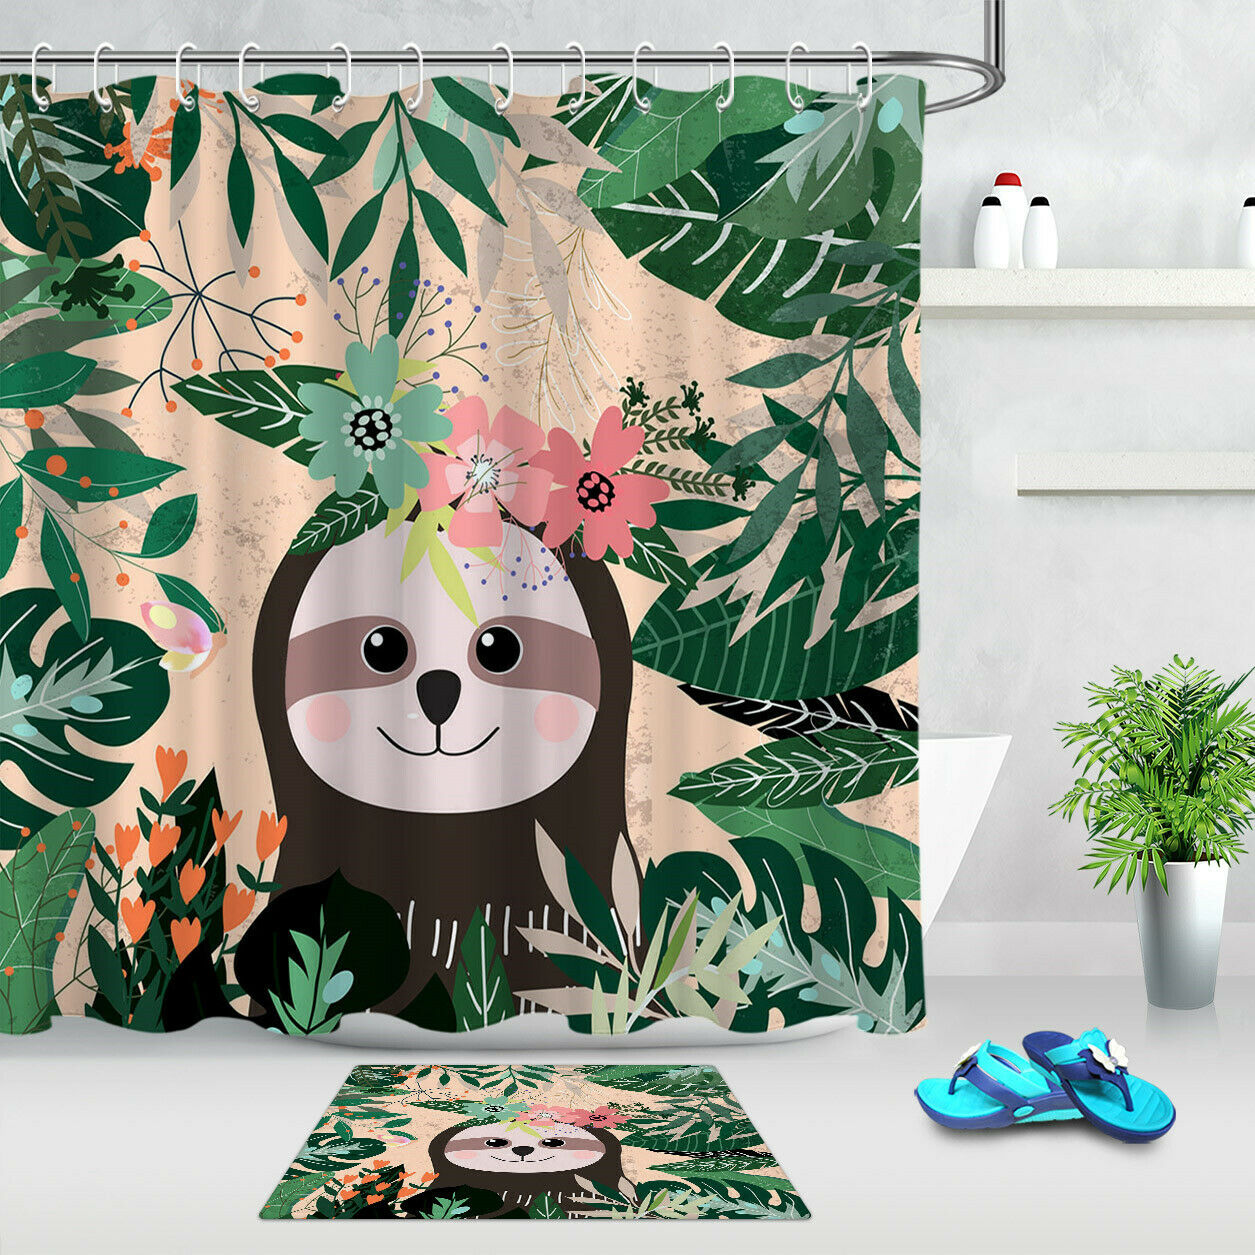 Details About Tropical Green Leave And Sloth Bear Fabric Shower Curtain Set Bathroom W Hooks